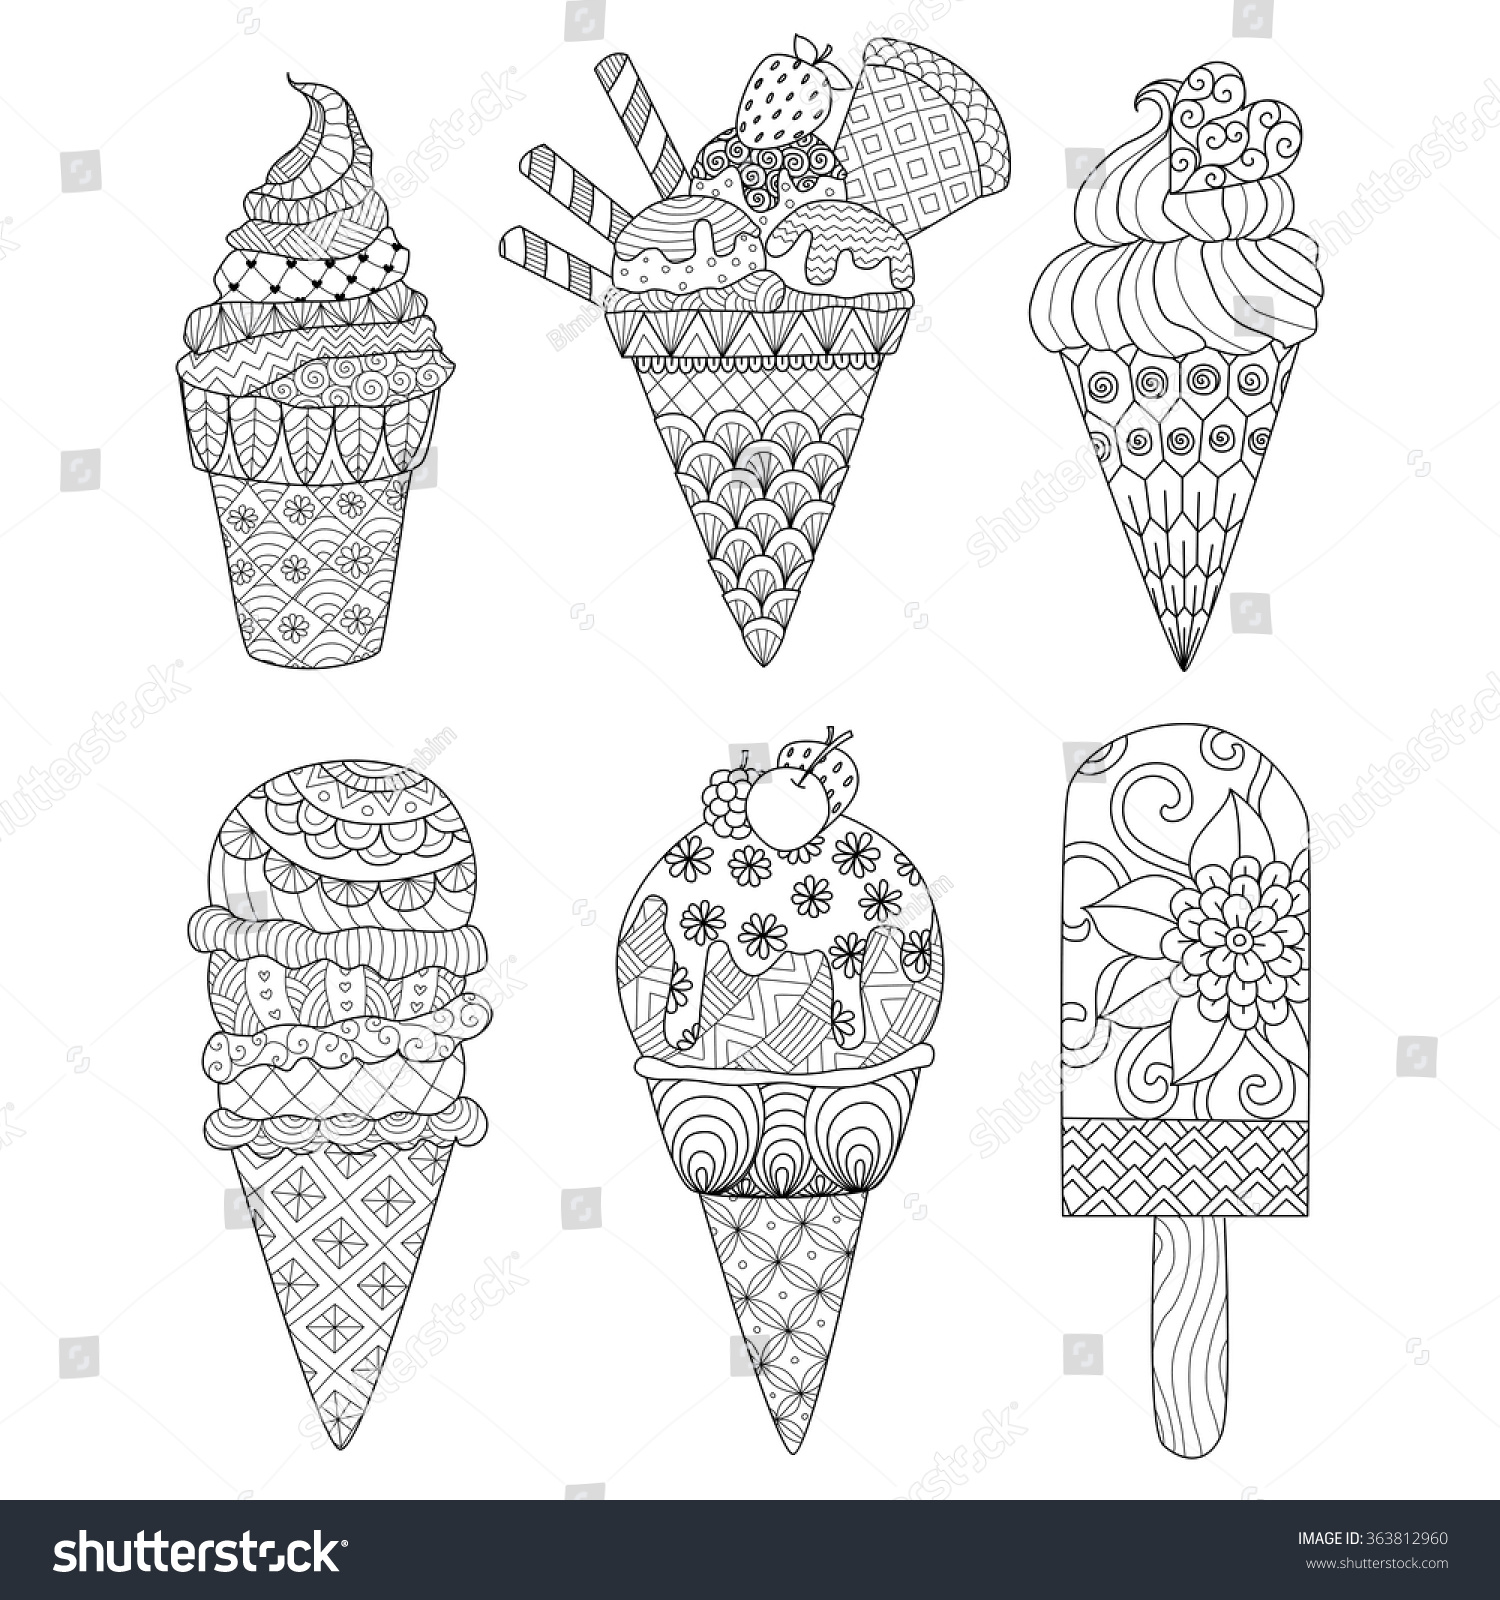 Coloring pictures of ice cream cones - Zentangle Ice Cream Set For Coloring Book For Adult And Other Decorations